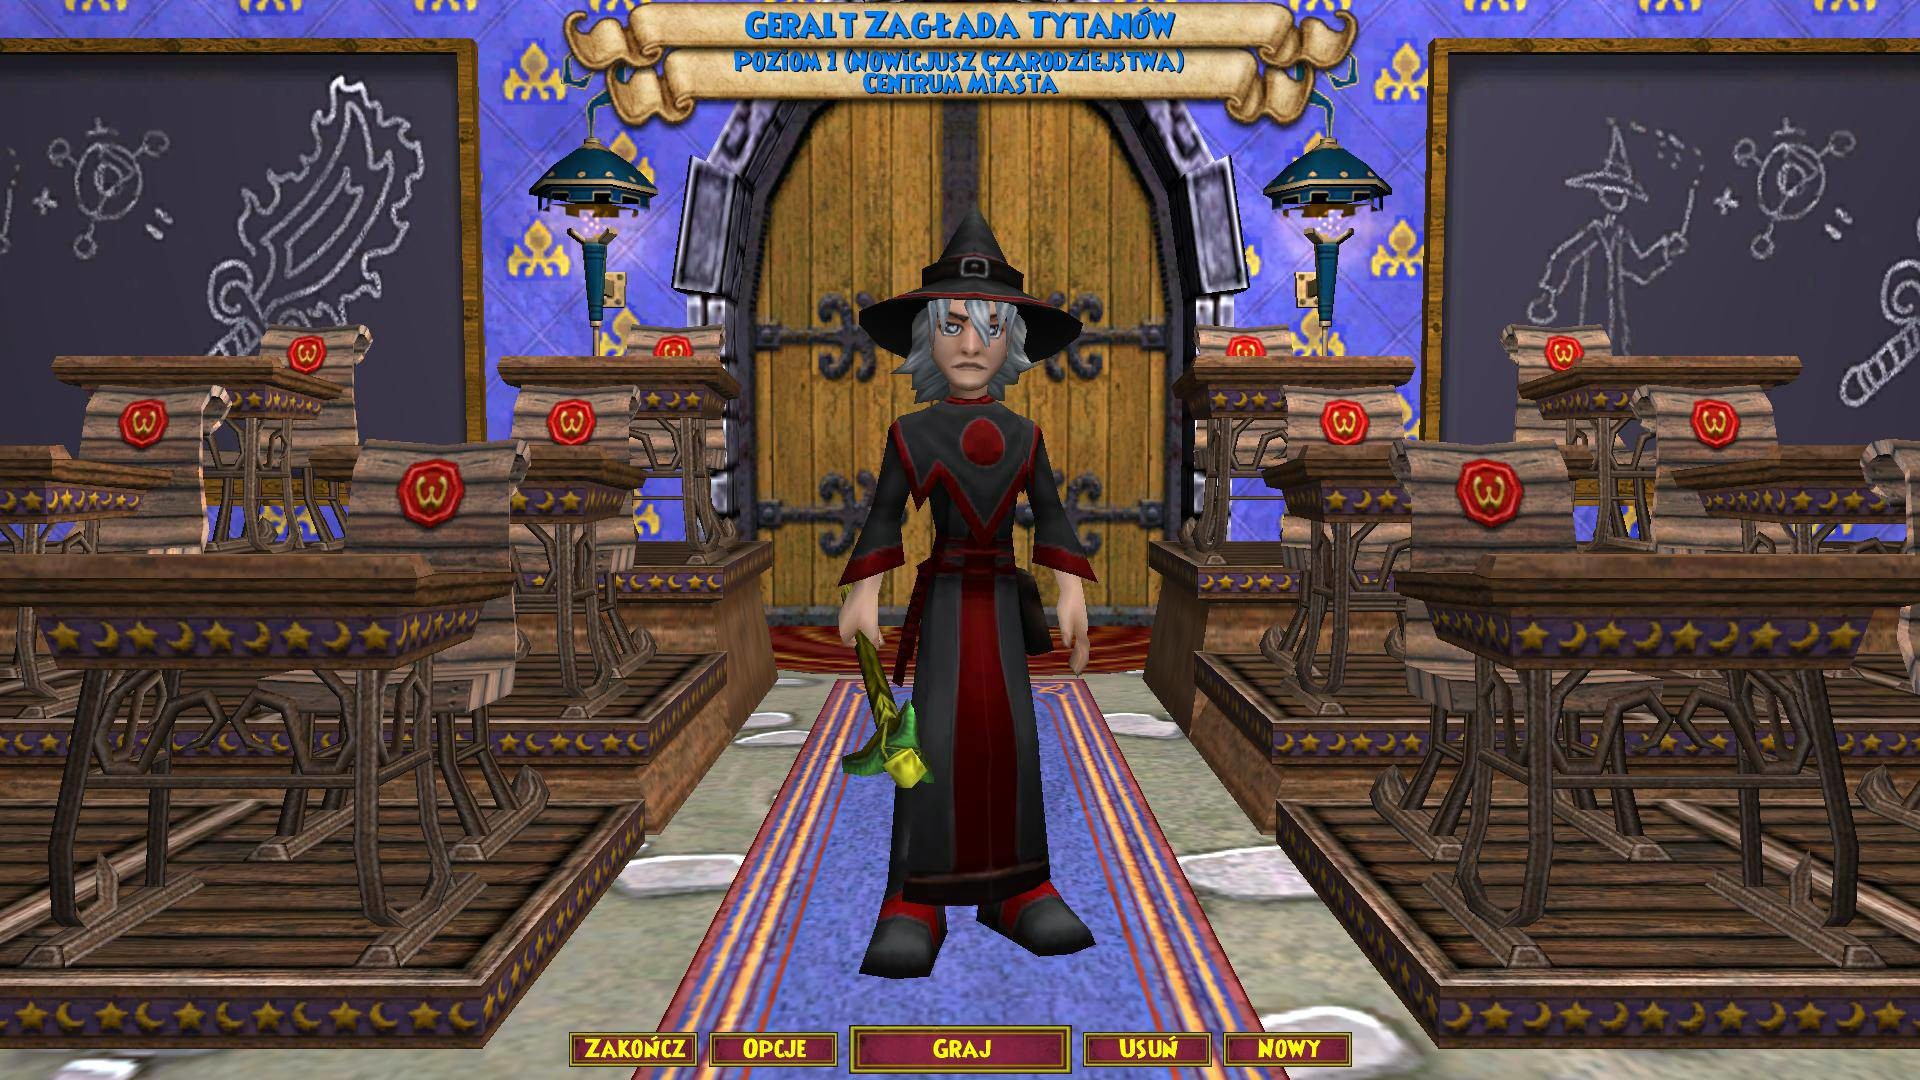 Res: 1920x1080, Wizard 101 Class Room ...